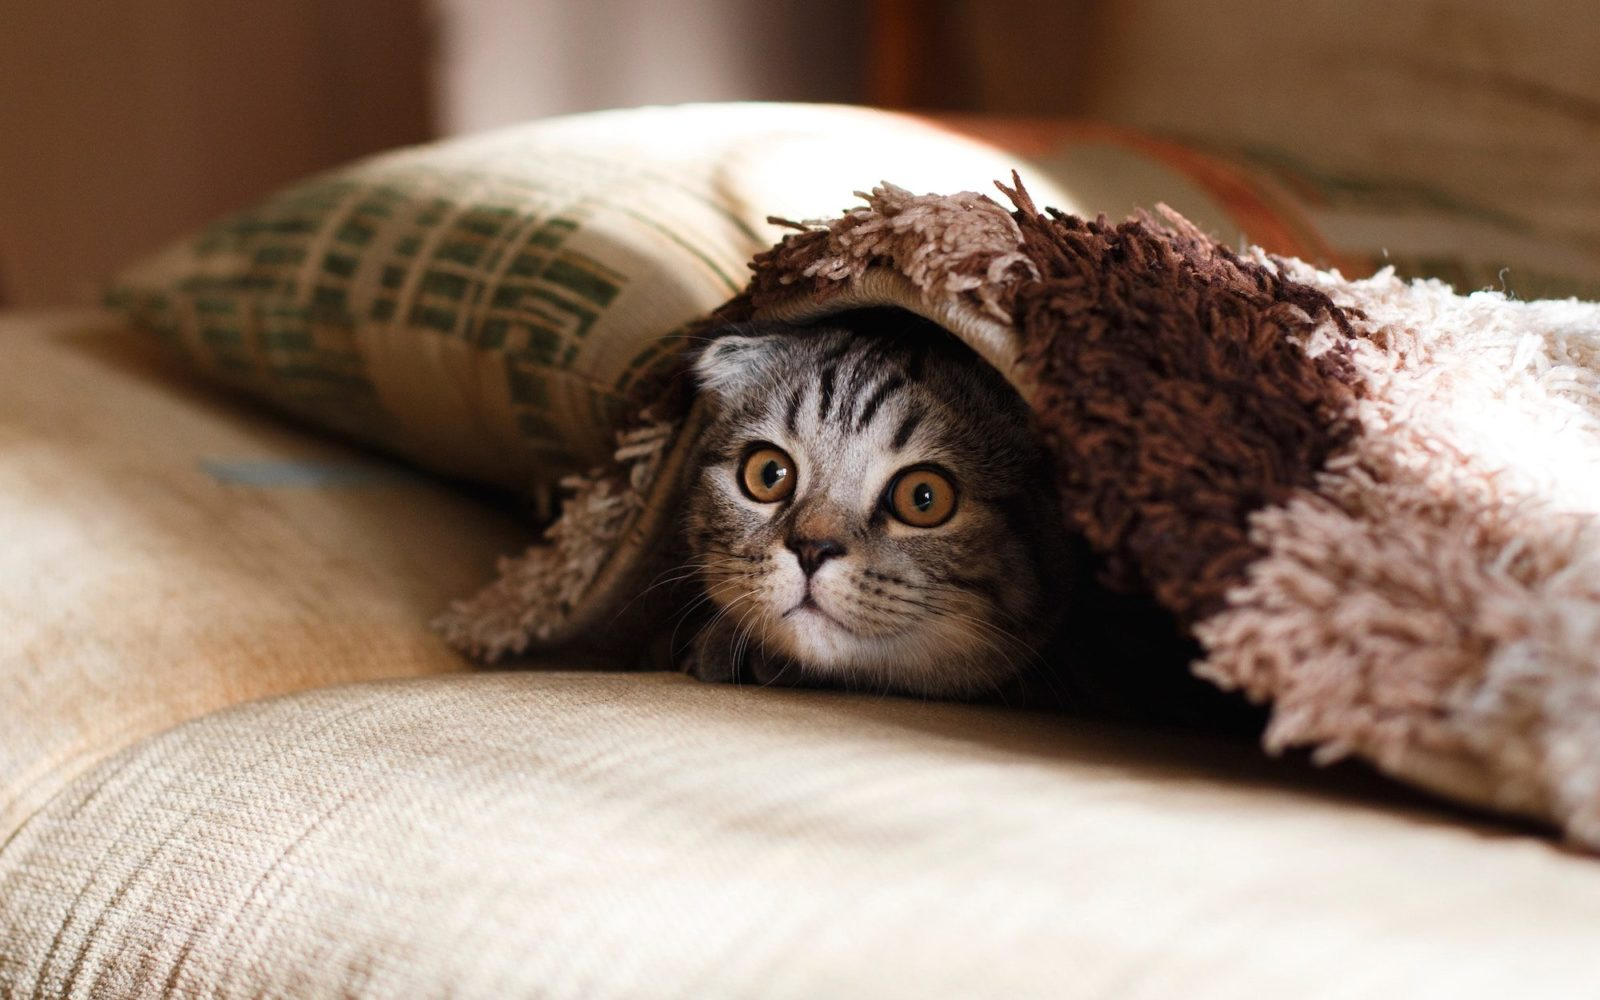 A cute cat peeking out from under a blanket >> A cute striped grey cat with its head and large round caramel-colored eyes peeking out from under a blanket.